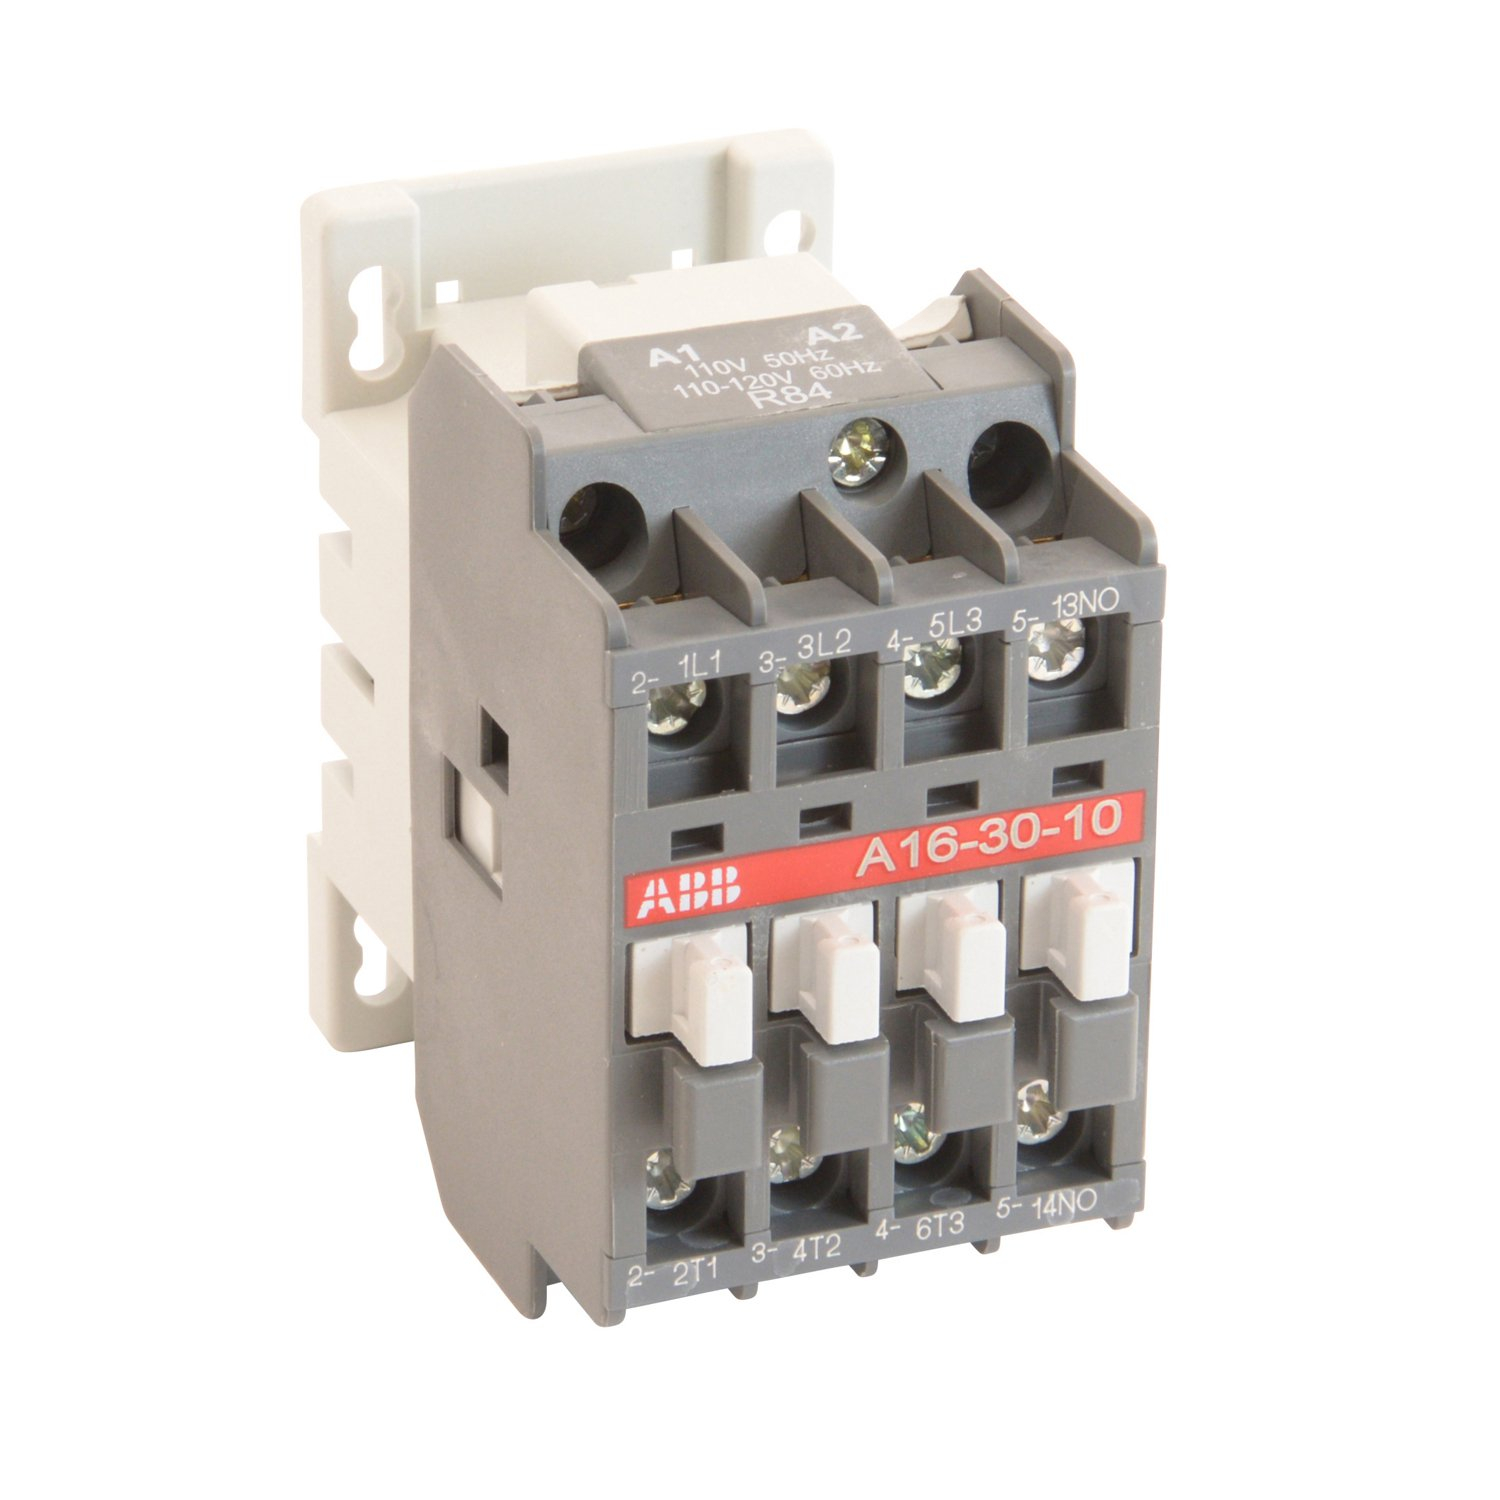 ab alternating relay wiring diagram find out here abb a16 30 10 wiring diagram download